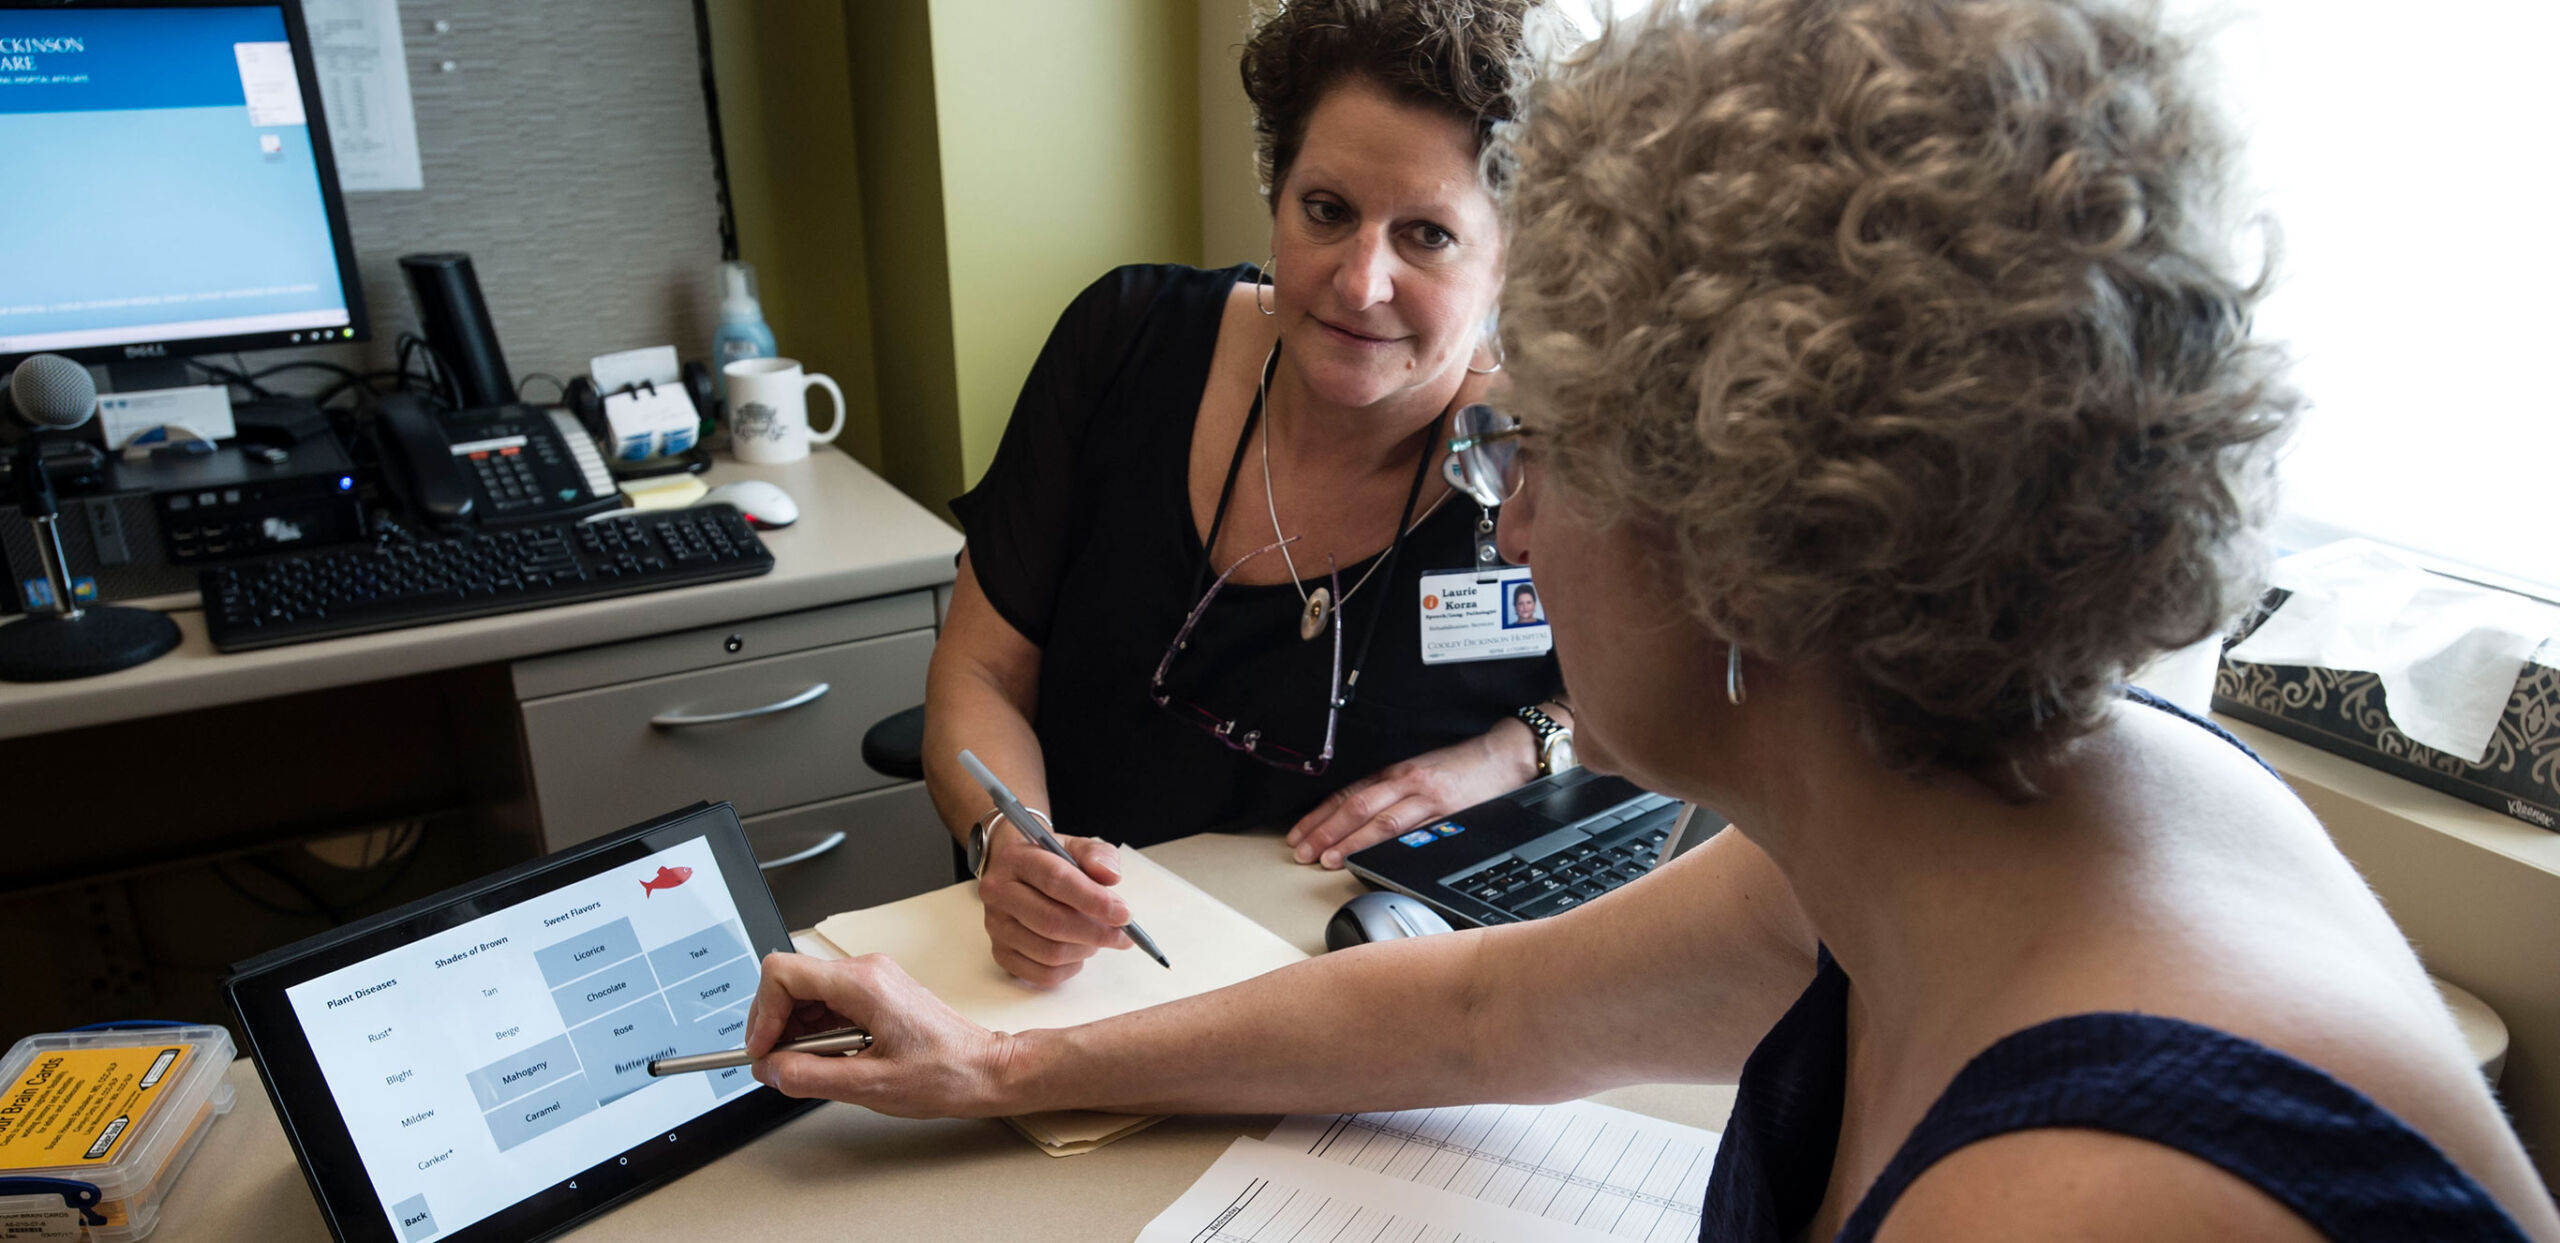 Speech therapist Laurie Korza works with a patient as she practices saying specified words at Cooley Dickinson Rehabilitation Services, Northampton, MA 01060.